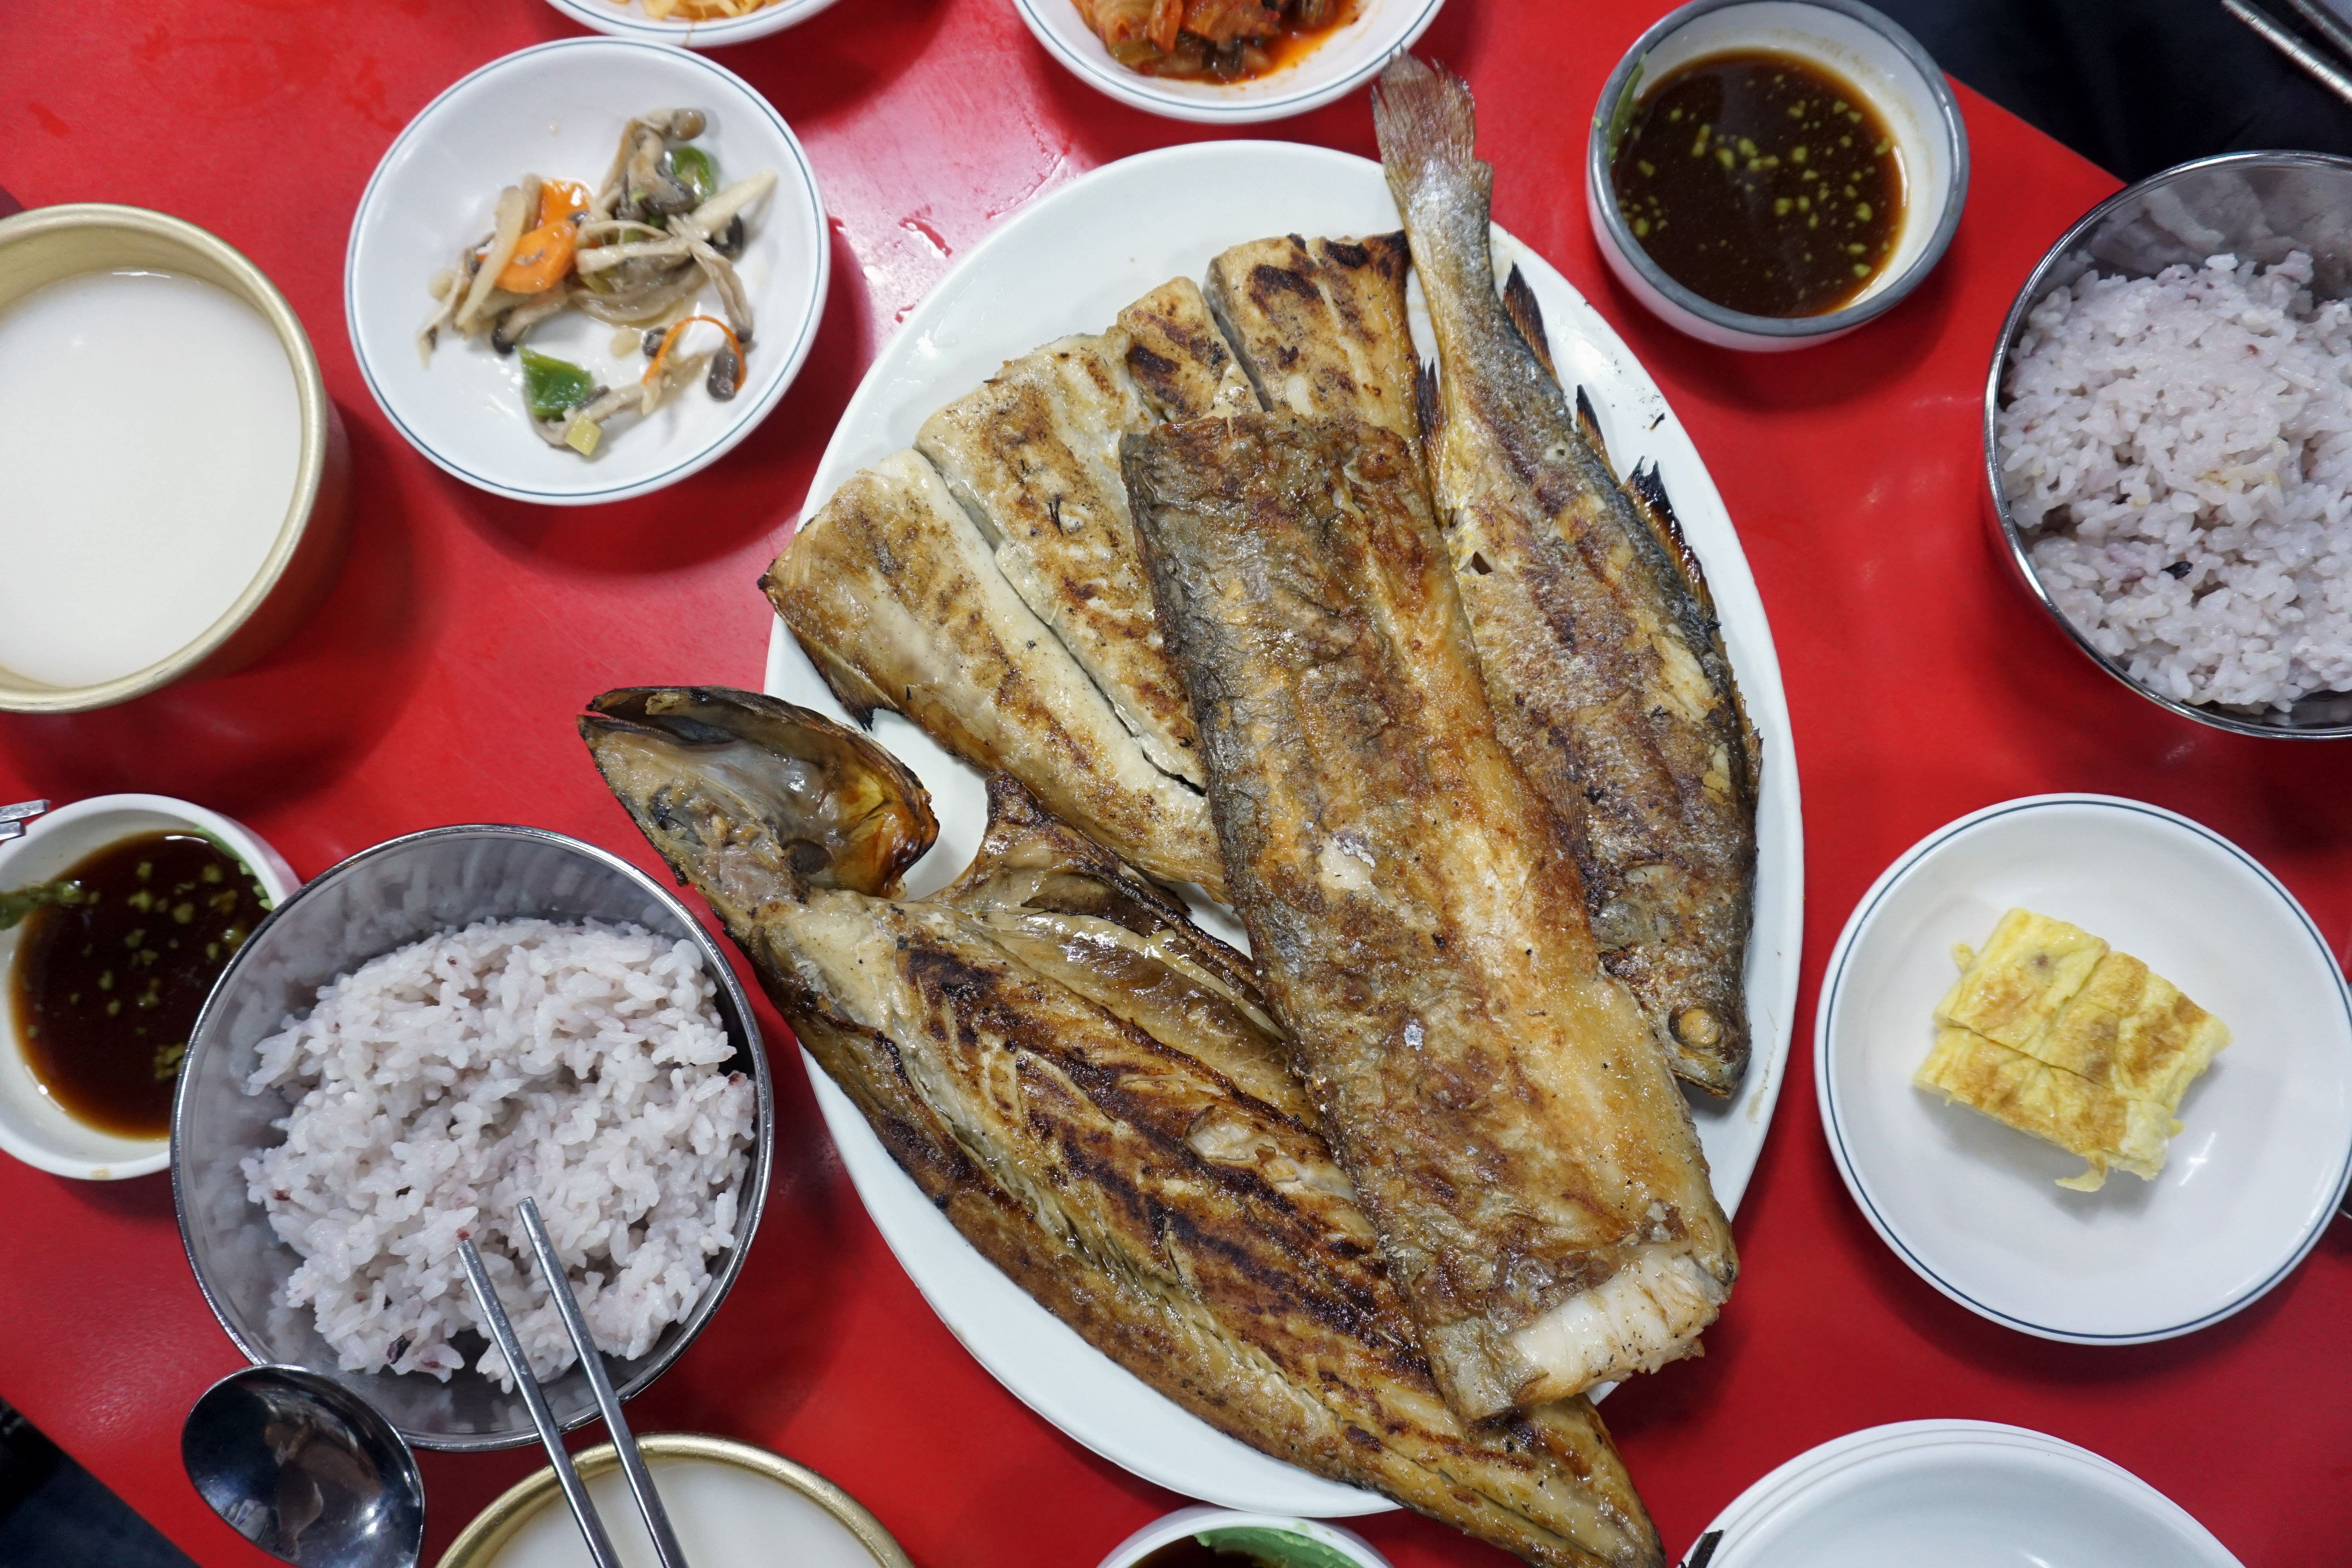 Grilled fish meal